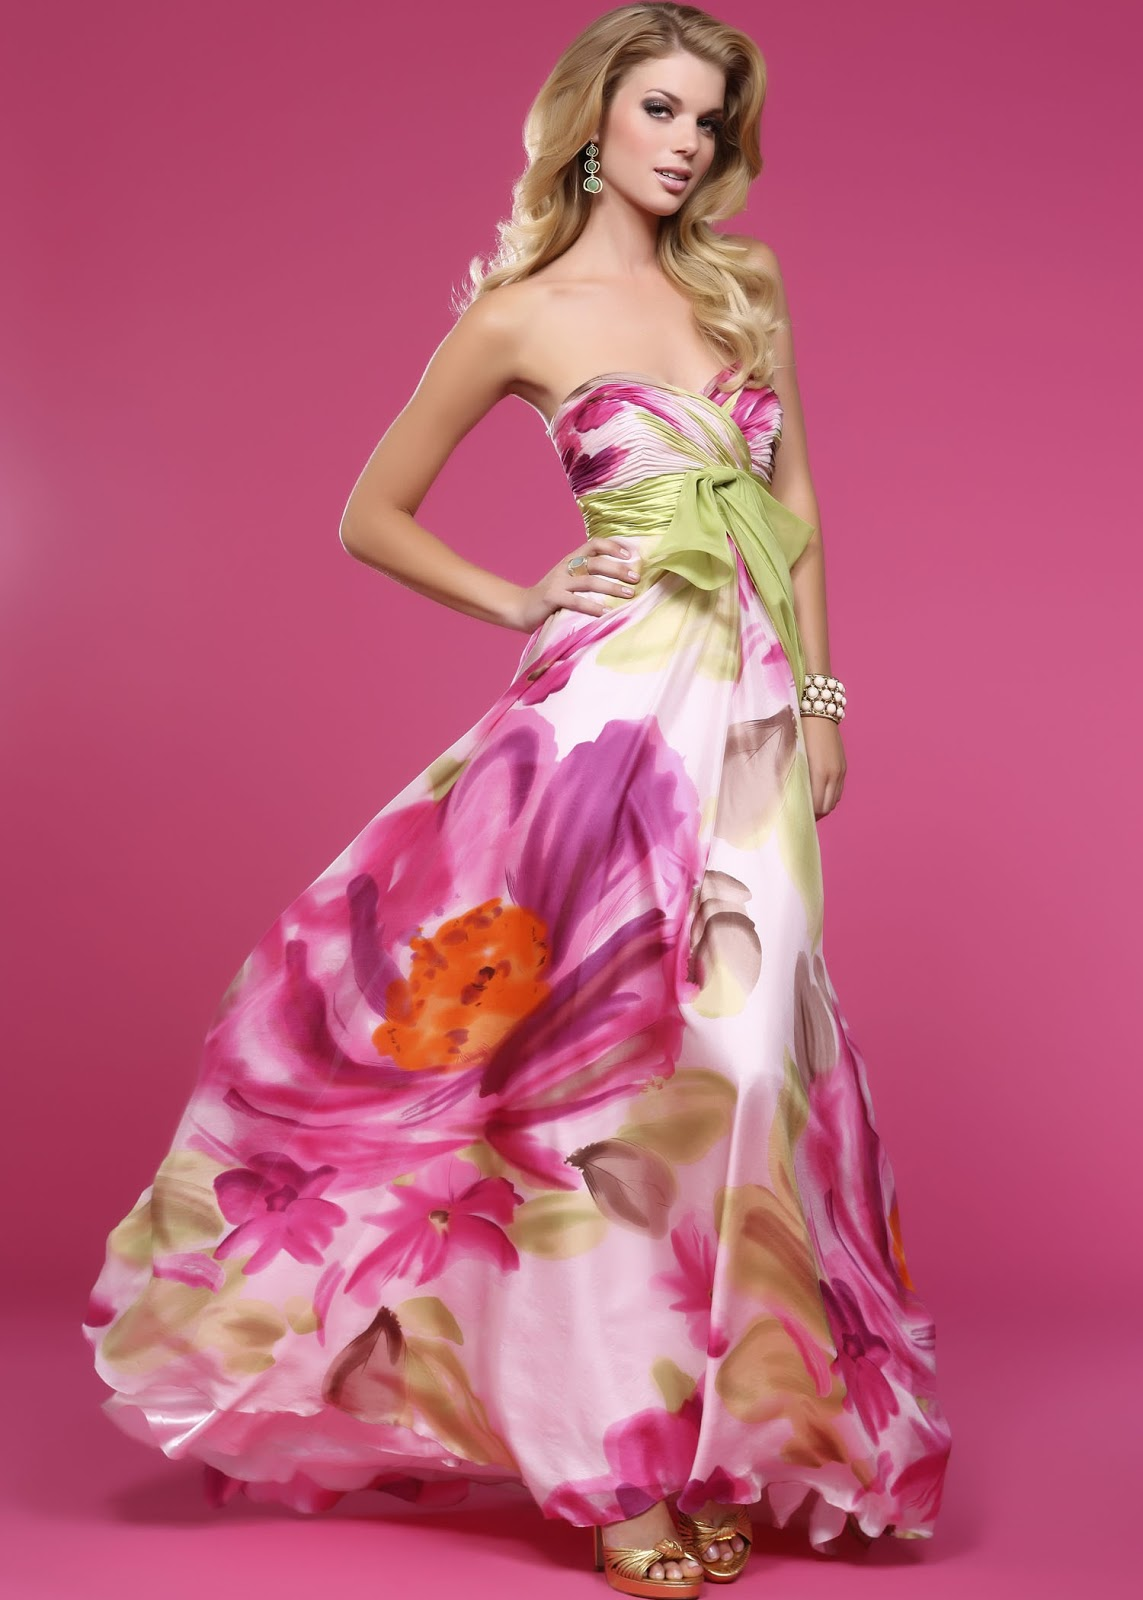 Beautiful Dresses Prom Dresses Dresses 2013 Women  Image 639950 On Favim